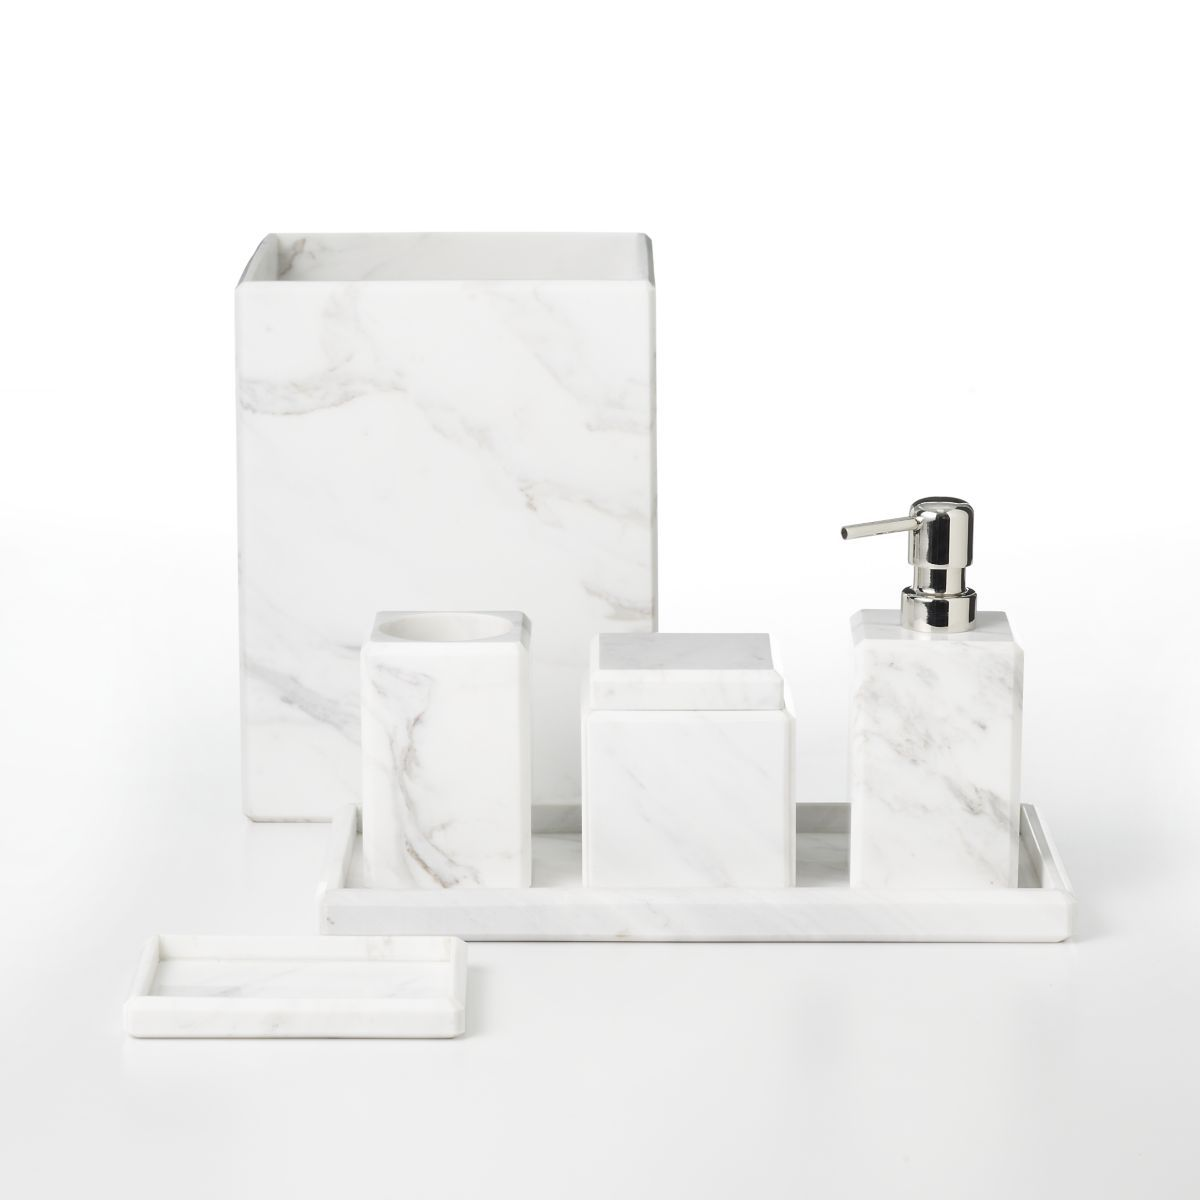 Carrara Marble Bath Accessories Shower Room Also Play Important Parts In Making Toilets Ealing And Useful